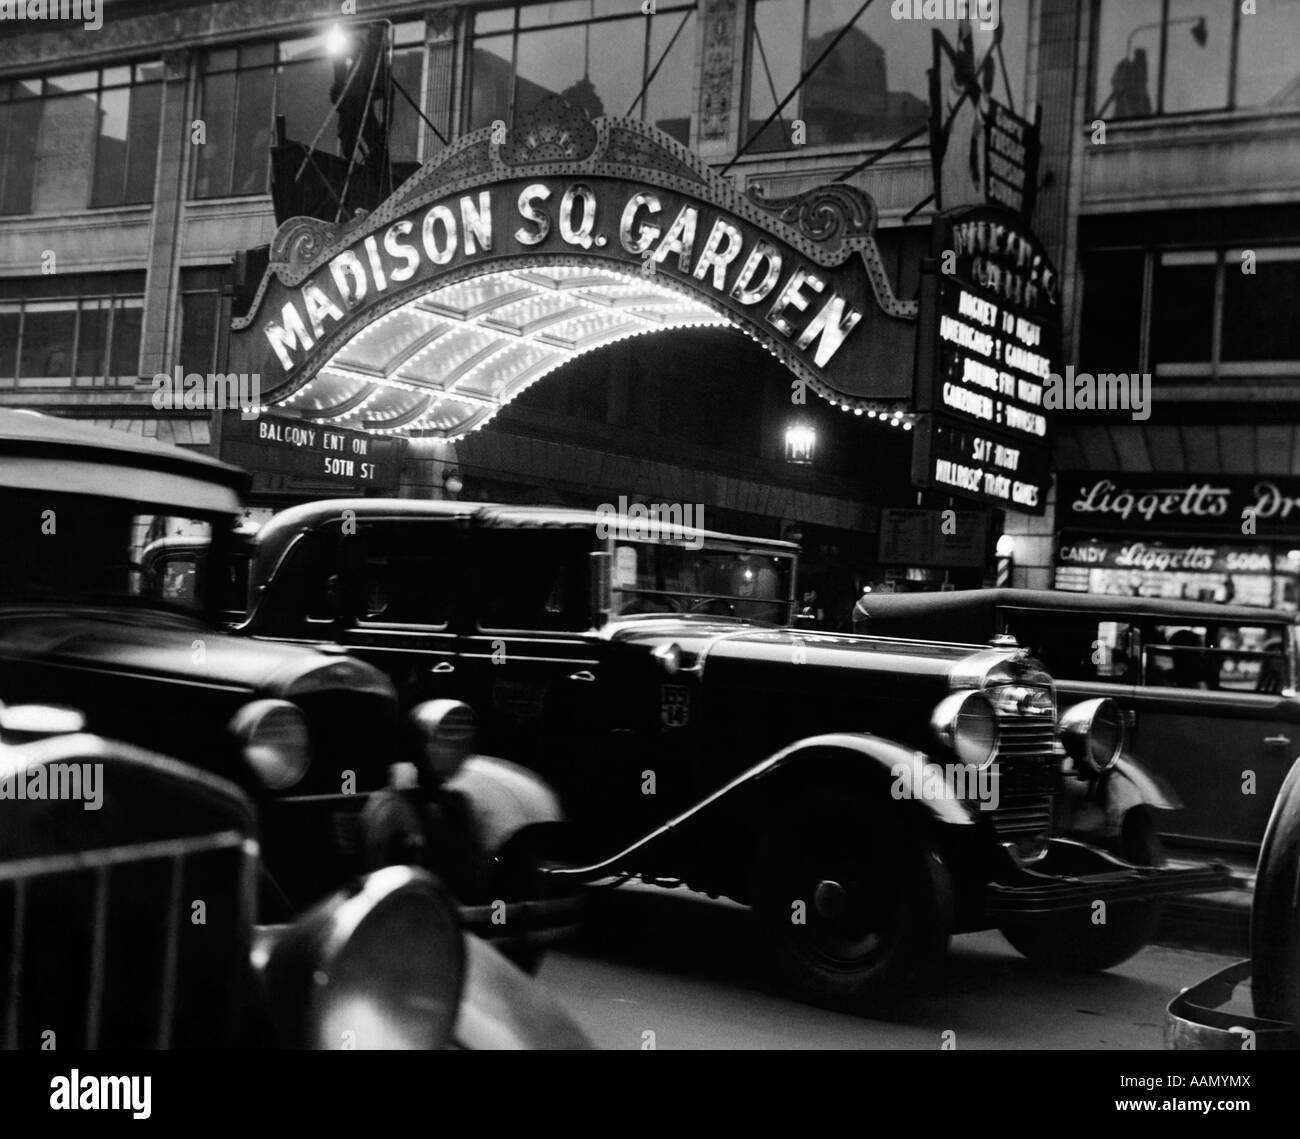 1920s 1930s CARS TAXIS MADISON SQUARE GARDEN MARQUEE AT NIGHT MANHATTAN NEW YORK CITY USA - Stock Image